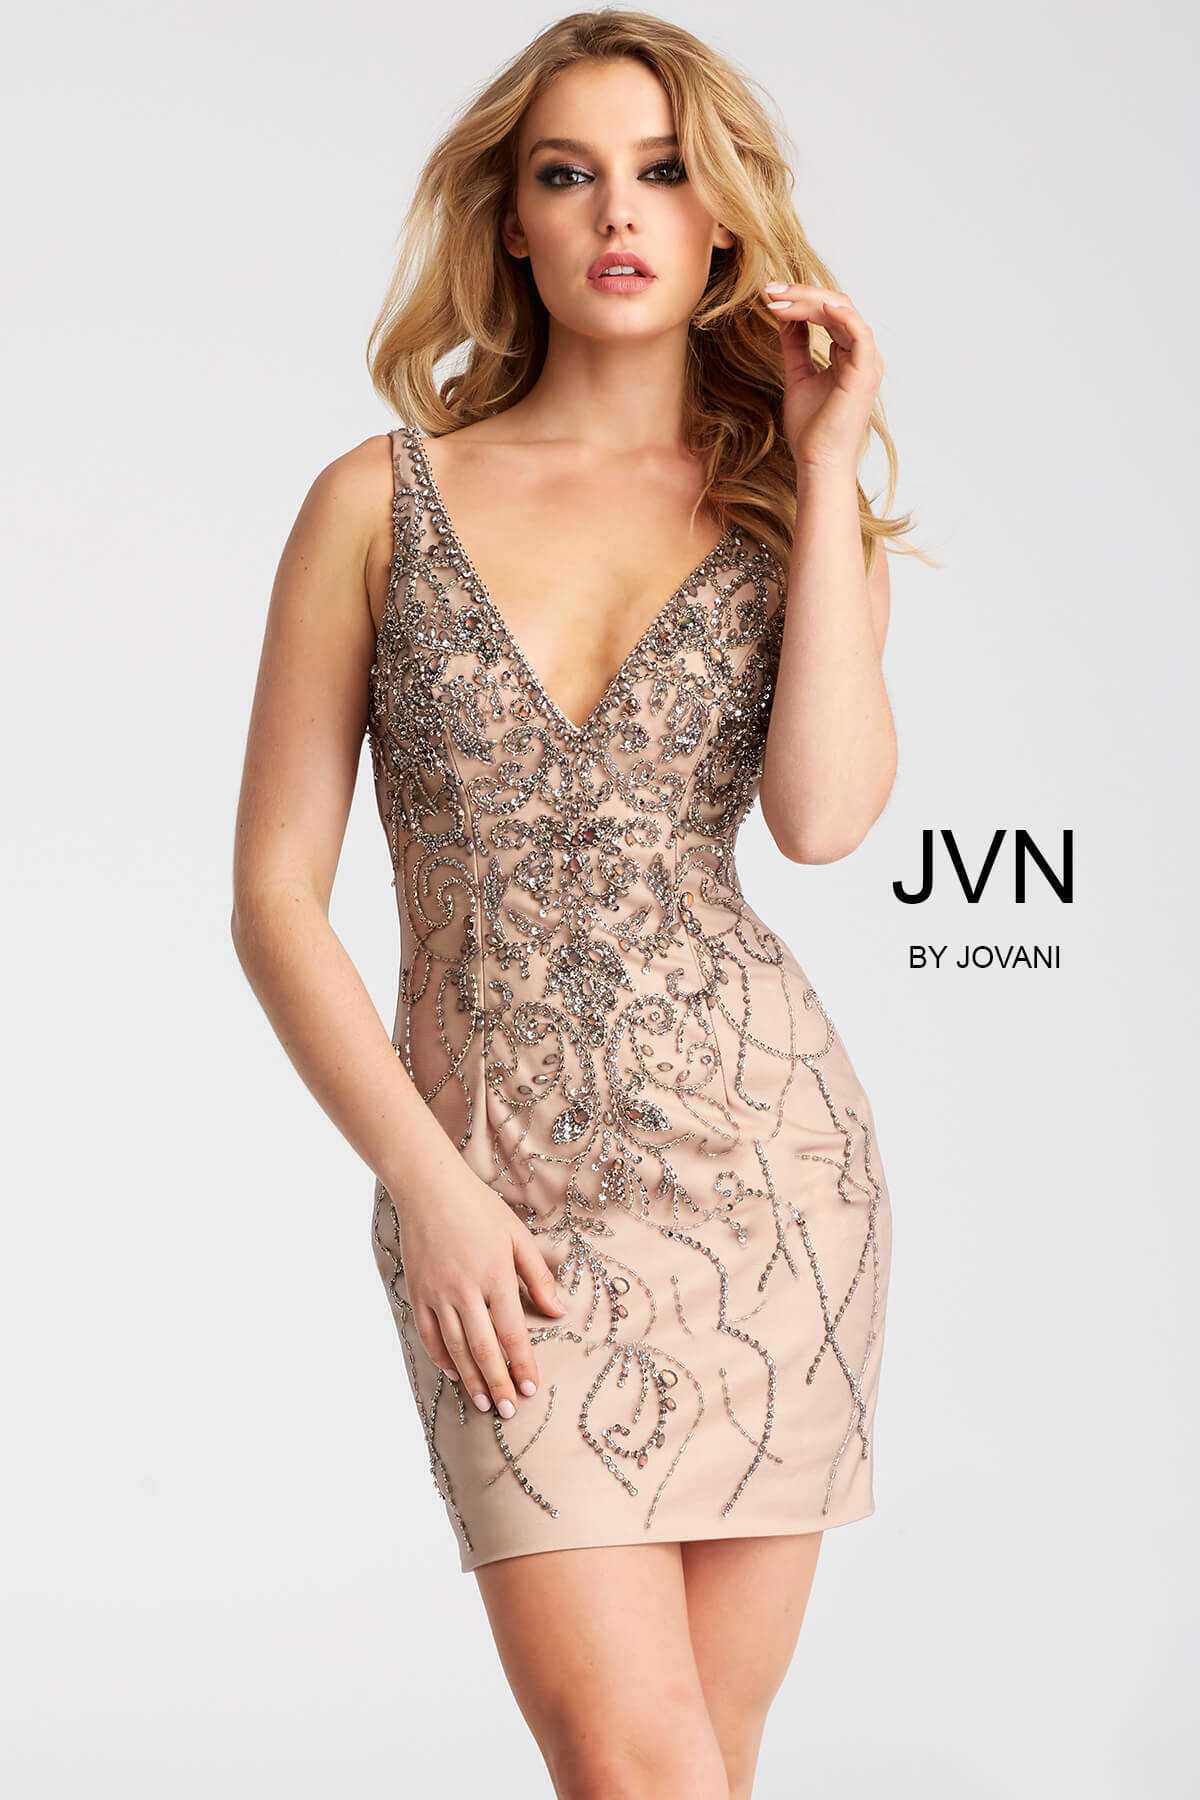 Nude embellished dress Nude Photos 26